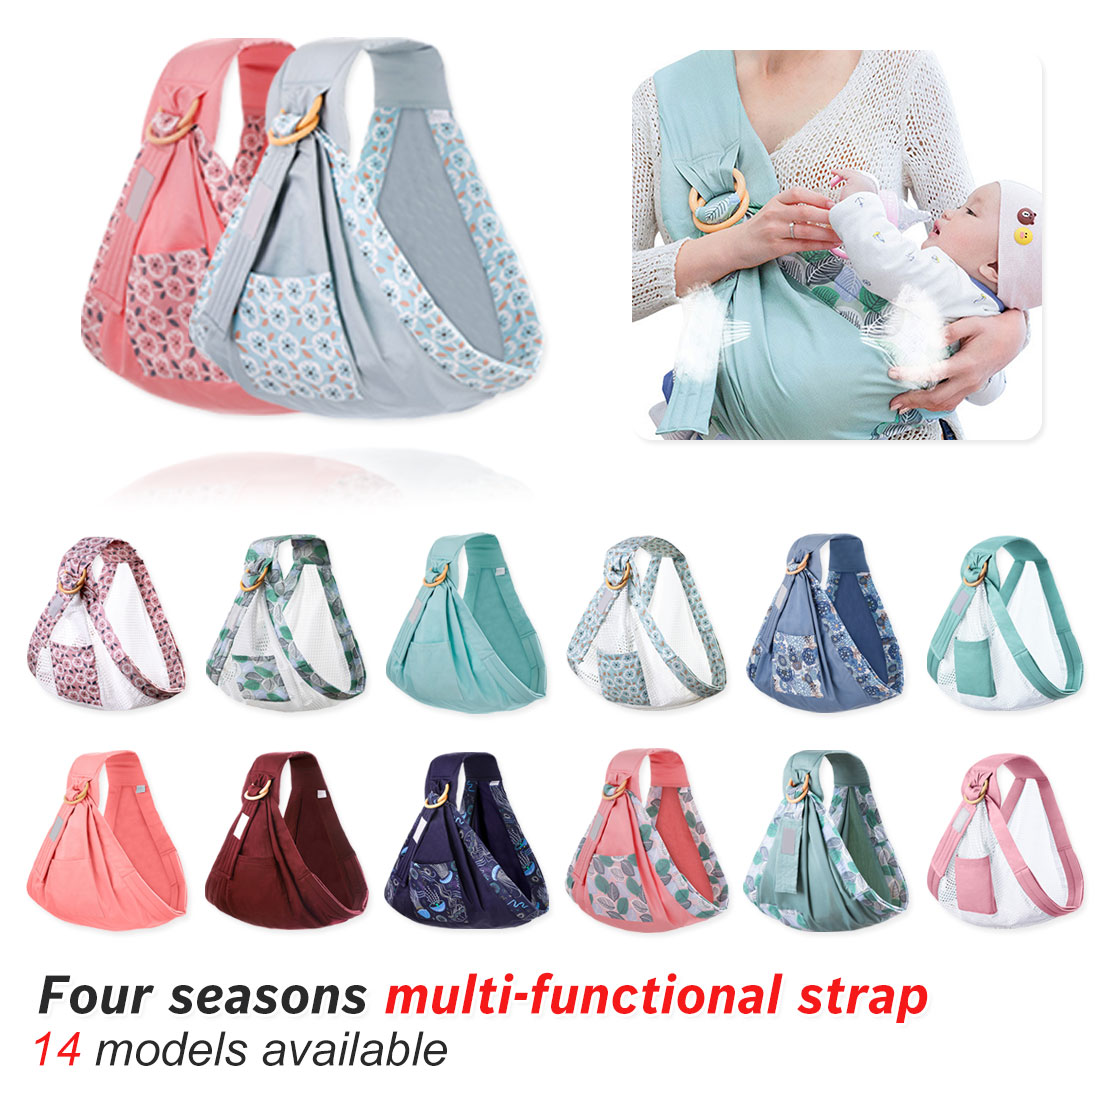 Breastfeeding Carrier Baby Wrap Carrier Newborn Sling Dual Use Infant Nursing Cover Carrier Up To 130 Lbs (0-36M)